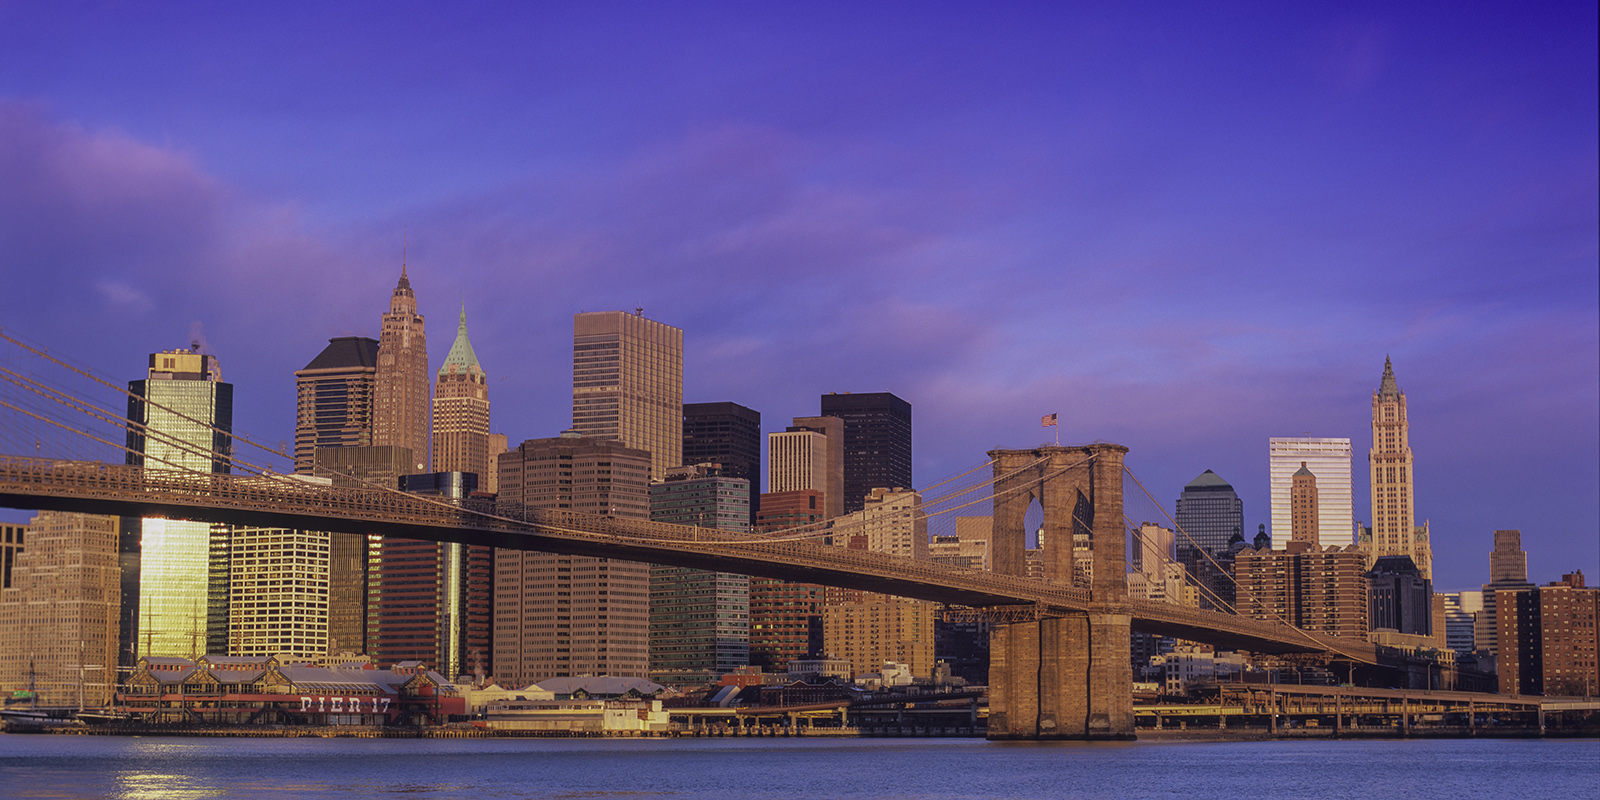 New York, NYC, New York City, Lower Manhattan, Brooklyn Bridge, Sunrise, Pastels, Pier 17, Wall Street, Financial District, Woolworth building, Fulton Fish Market, Brooklyn, panorama, photo